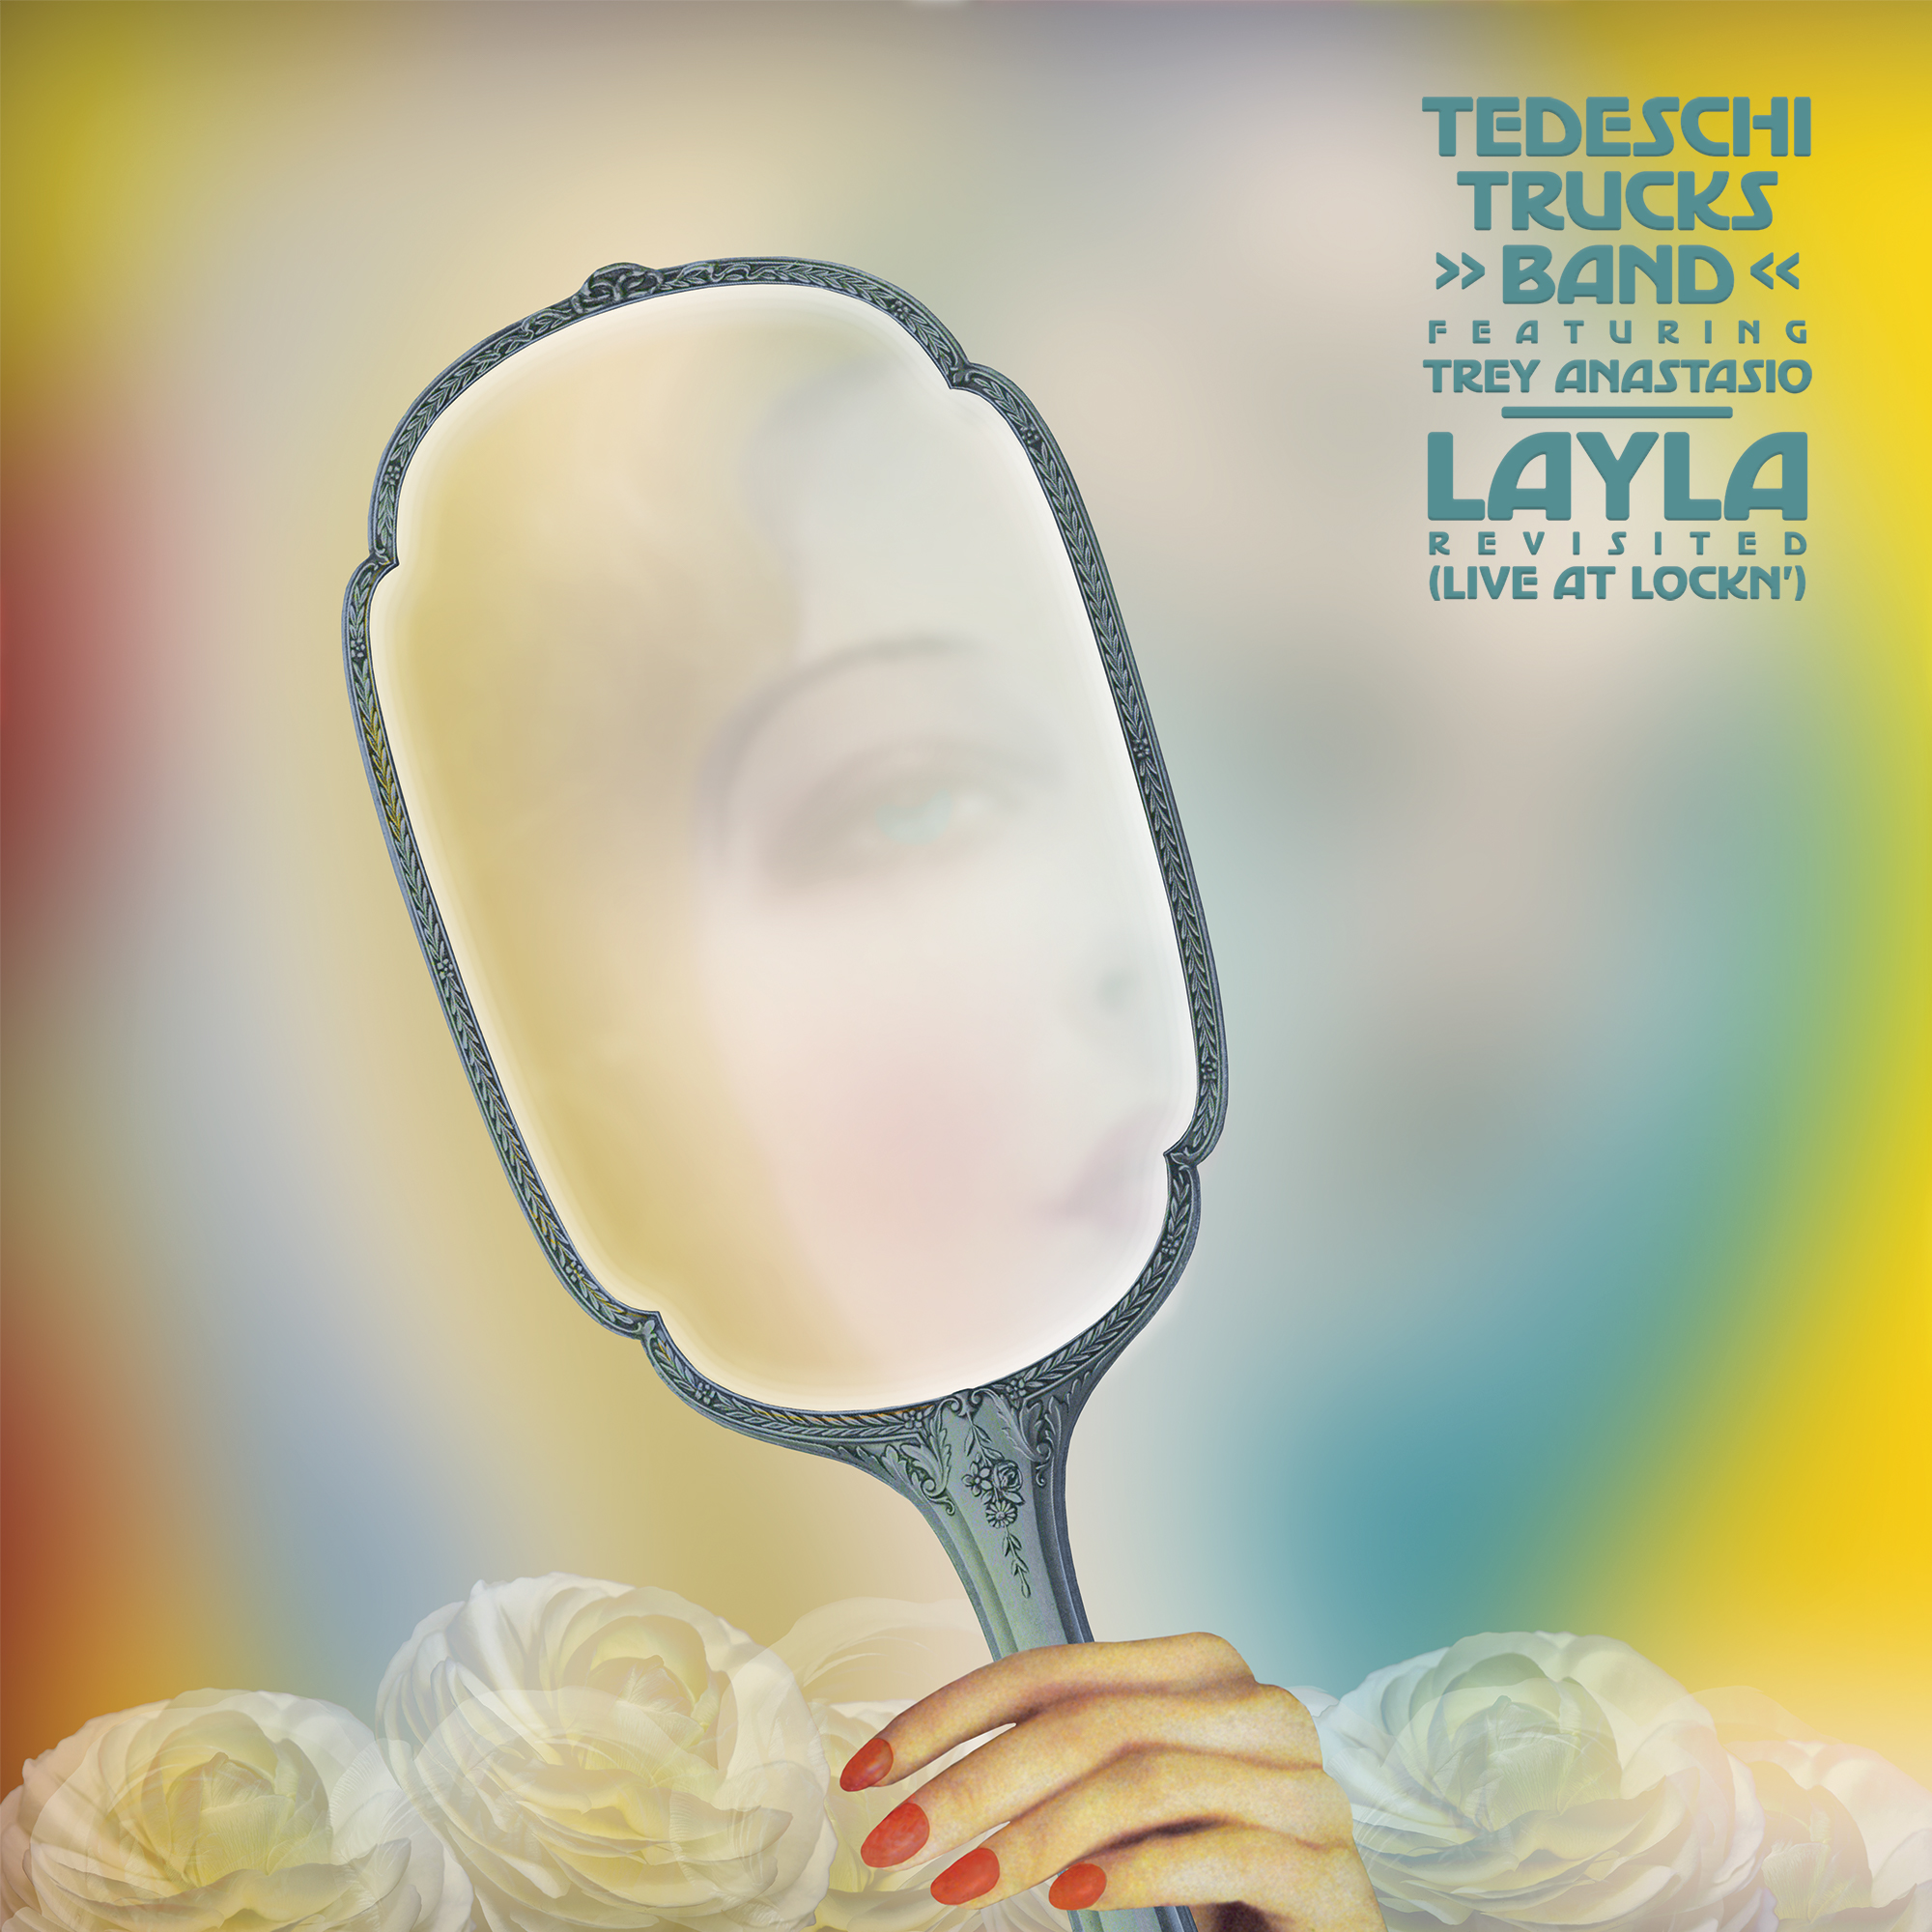 Layla Revisited (Live at LOCKN') featuring Trey Anastasio